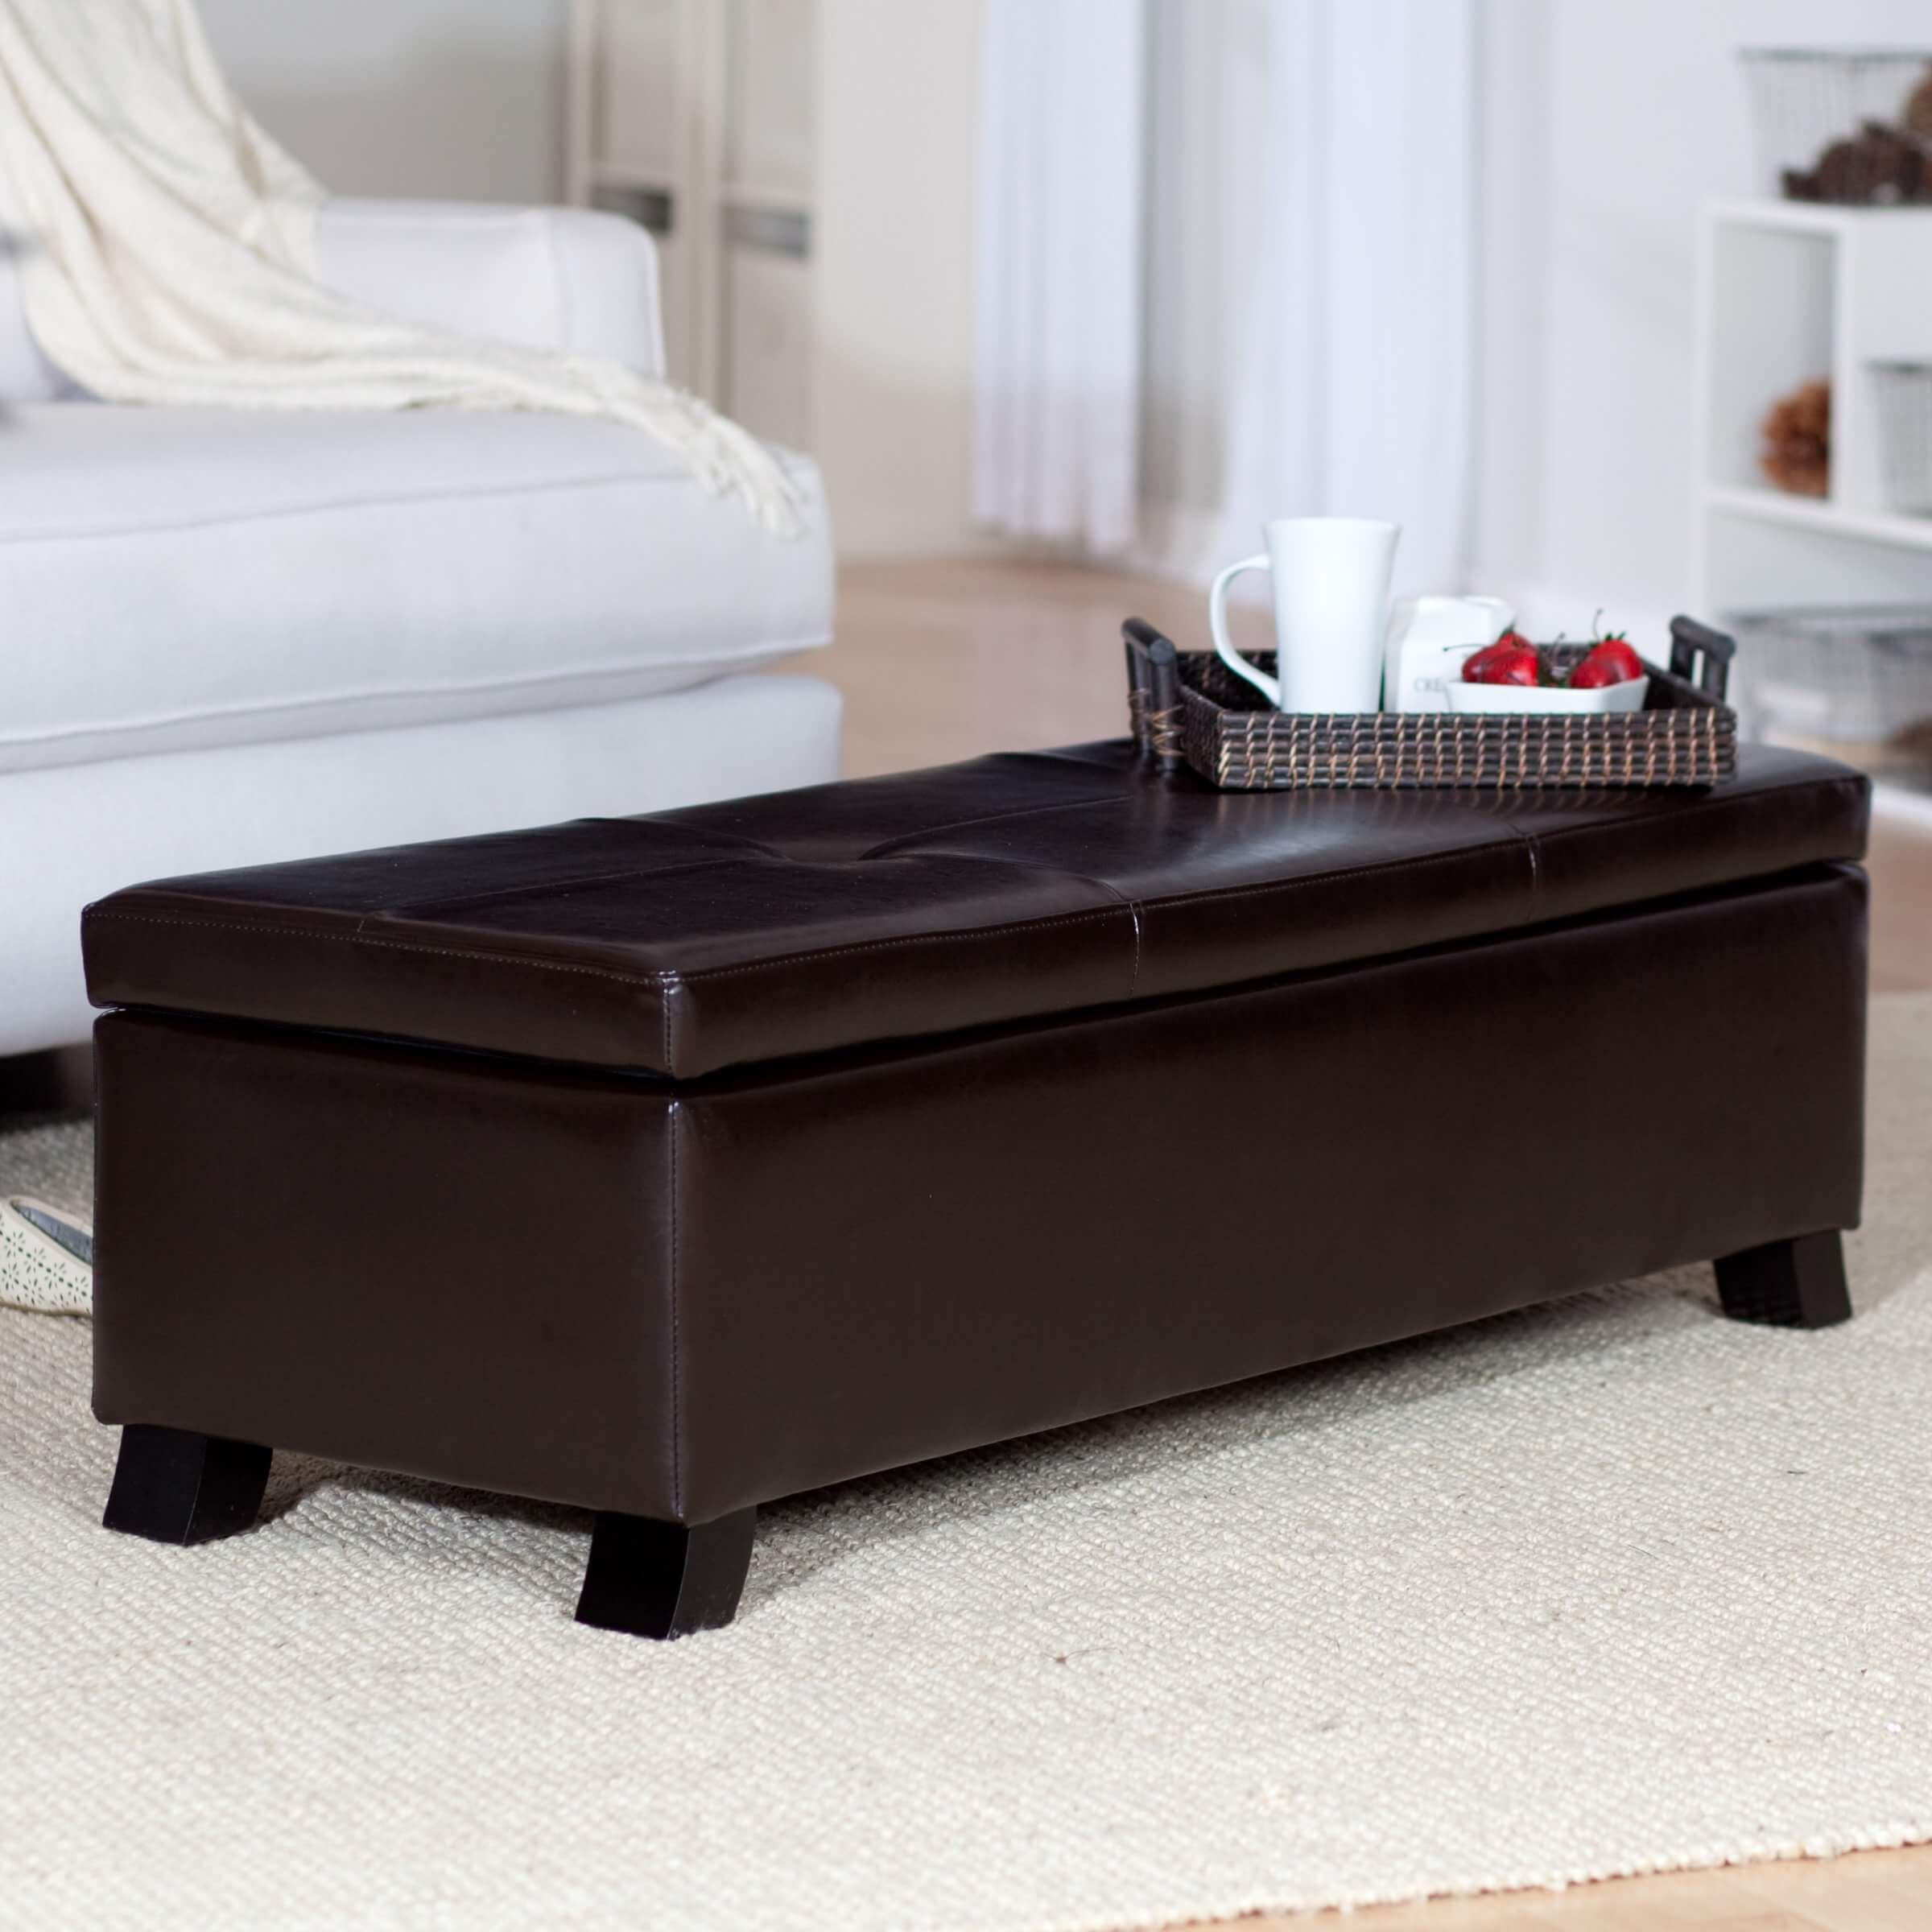 on metal for furniture sofa legs interior drawers black outdoor with brown shelf tapered as design underneath leather storage dark cream modern and bedrooms plus endearing benches handle also carpet frame wooden bench additional single open bronze